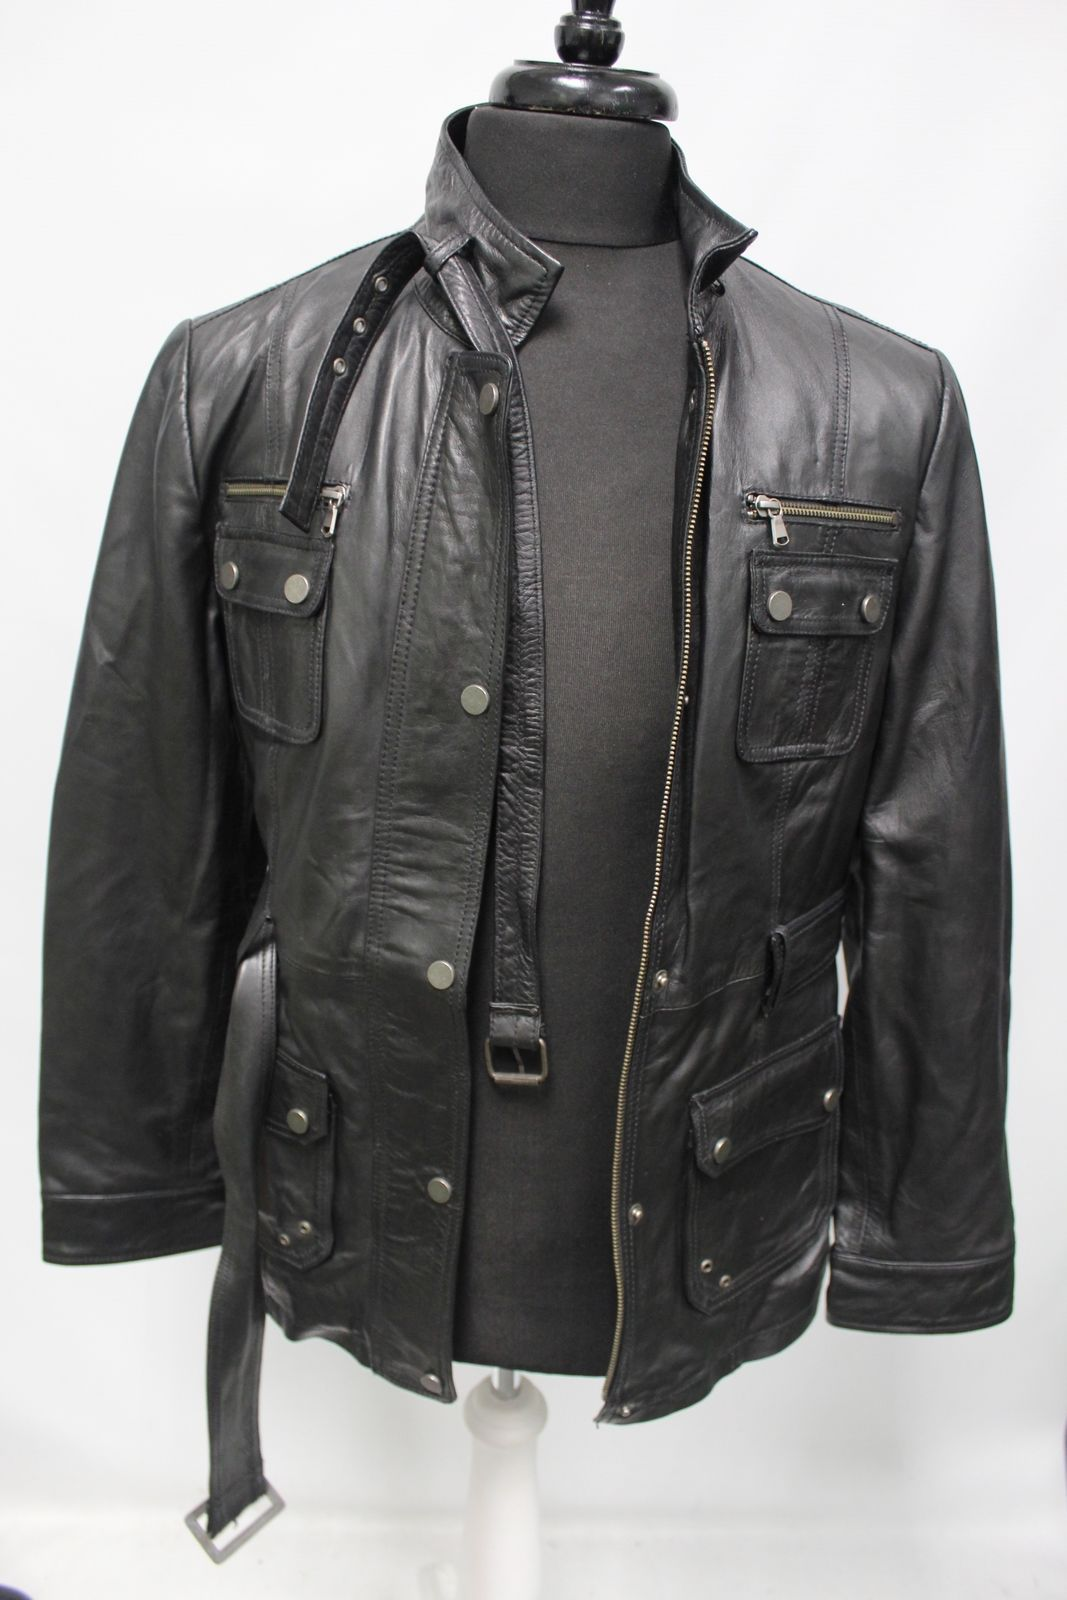 Men's CORTY Black Genuine Leather Jacket Size